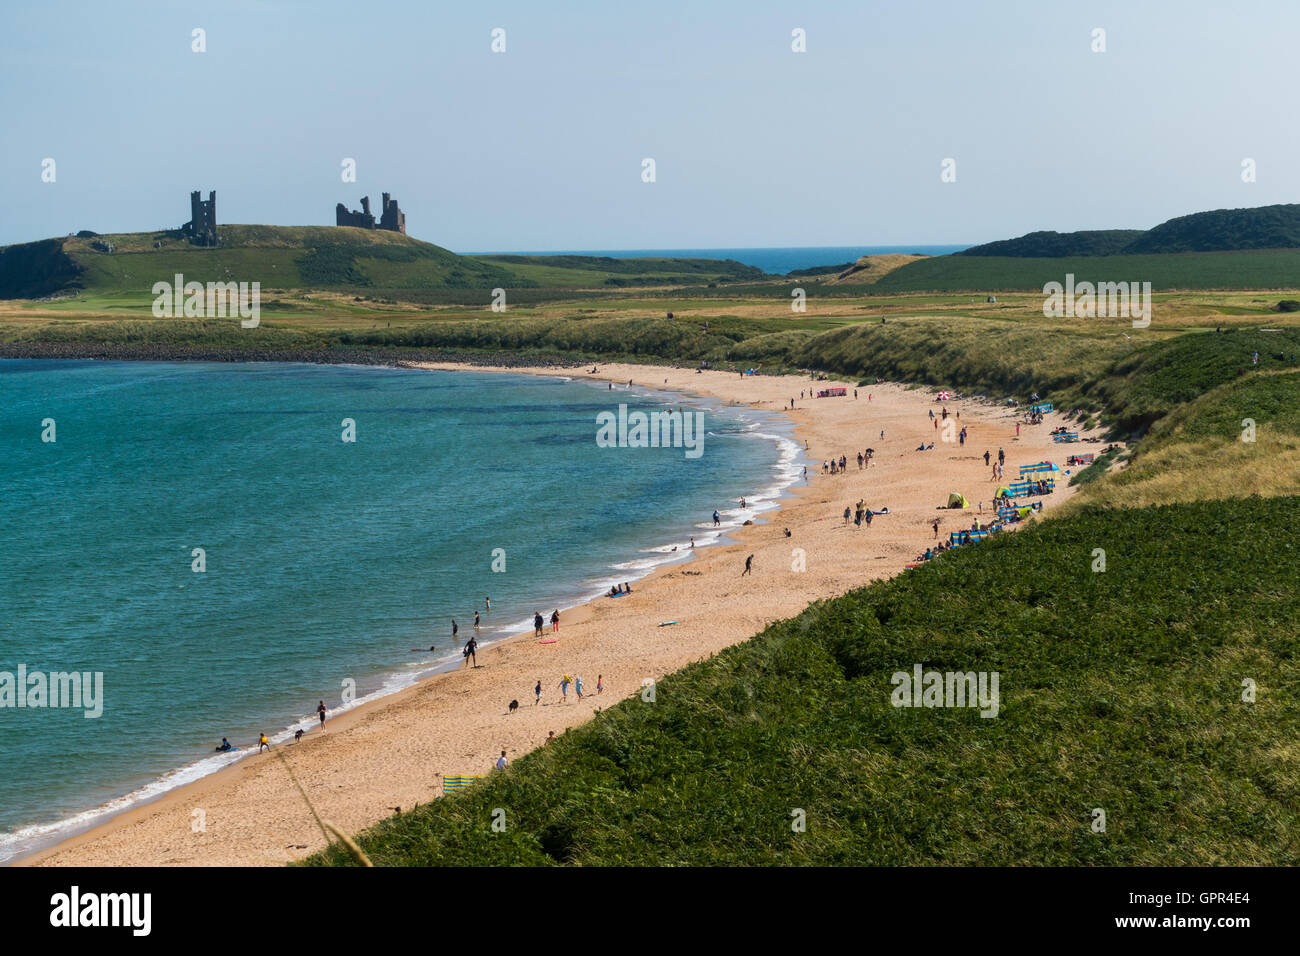 Embleton Bay and beach looking towards Dunstanburgh Castle, Northumberland - Stock Image